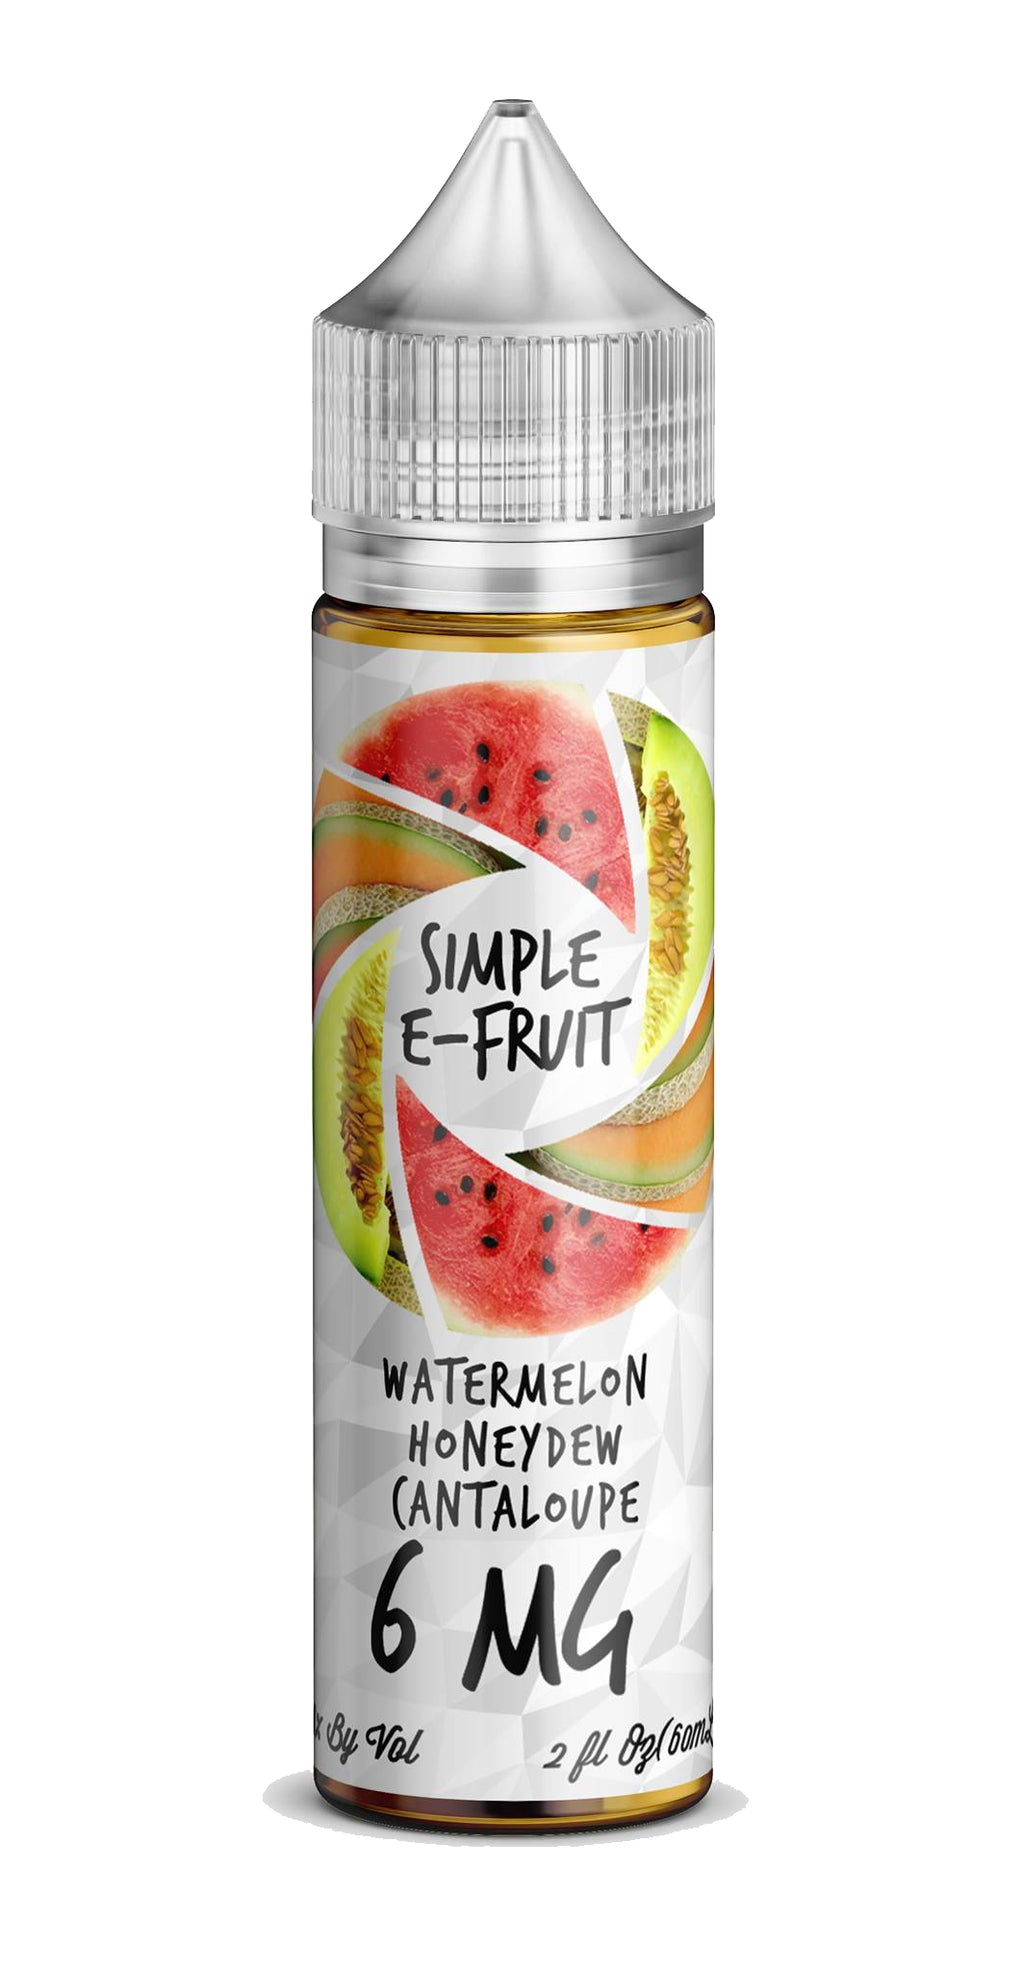 Simple E-Fruit Watermelon Honeydew Cantaloupe 60ml